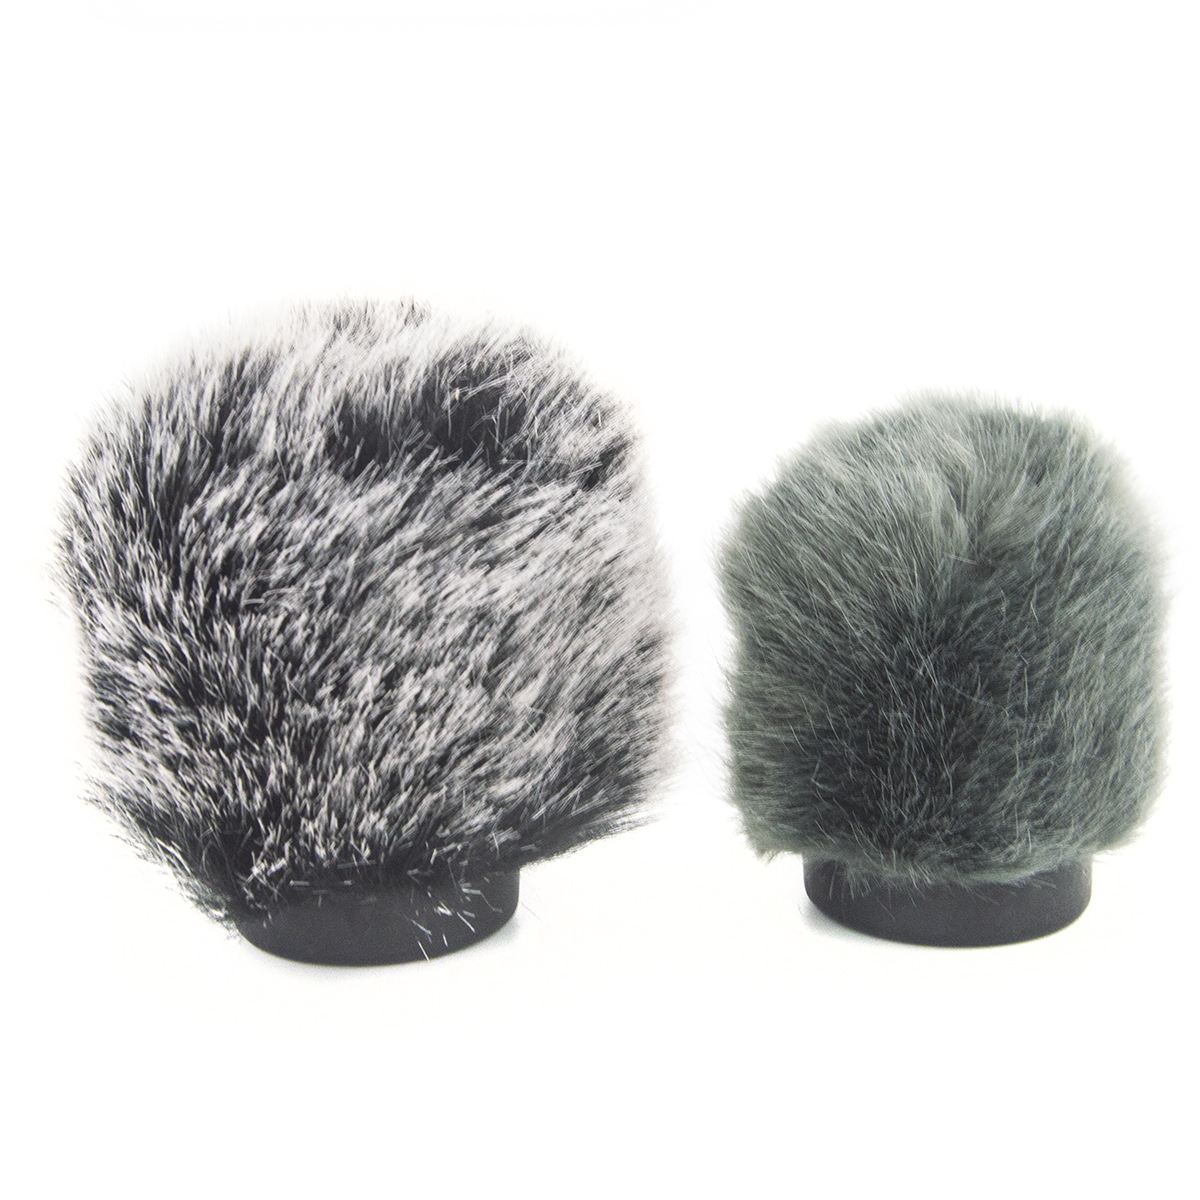 Coolvox Fur Windscreen Furry Windshield Muff For Condenser Microphone Wind Shield Protection Outdoor Interview Mic Cover 6.5cm